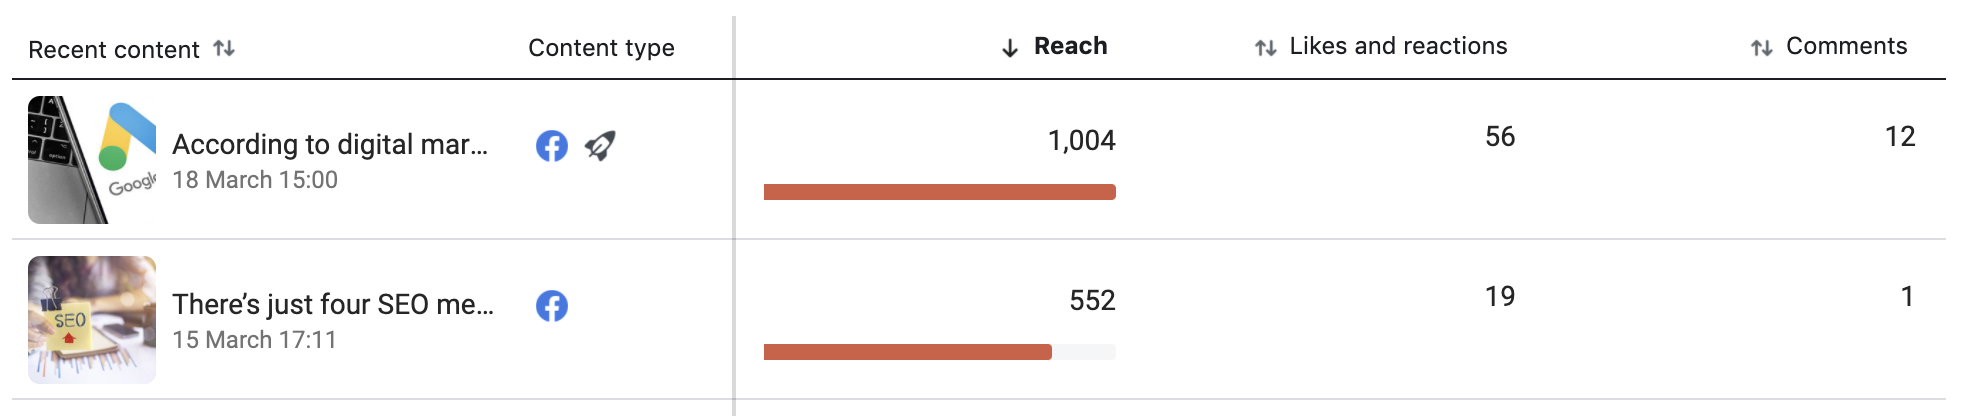 Facebook reach, likes/reactions, and comments